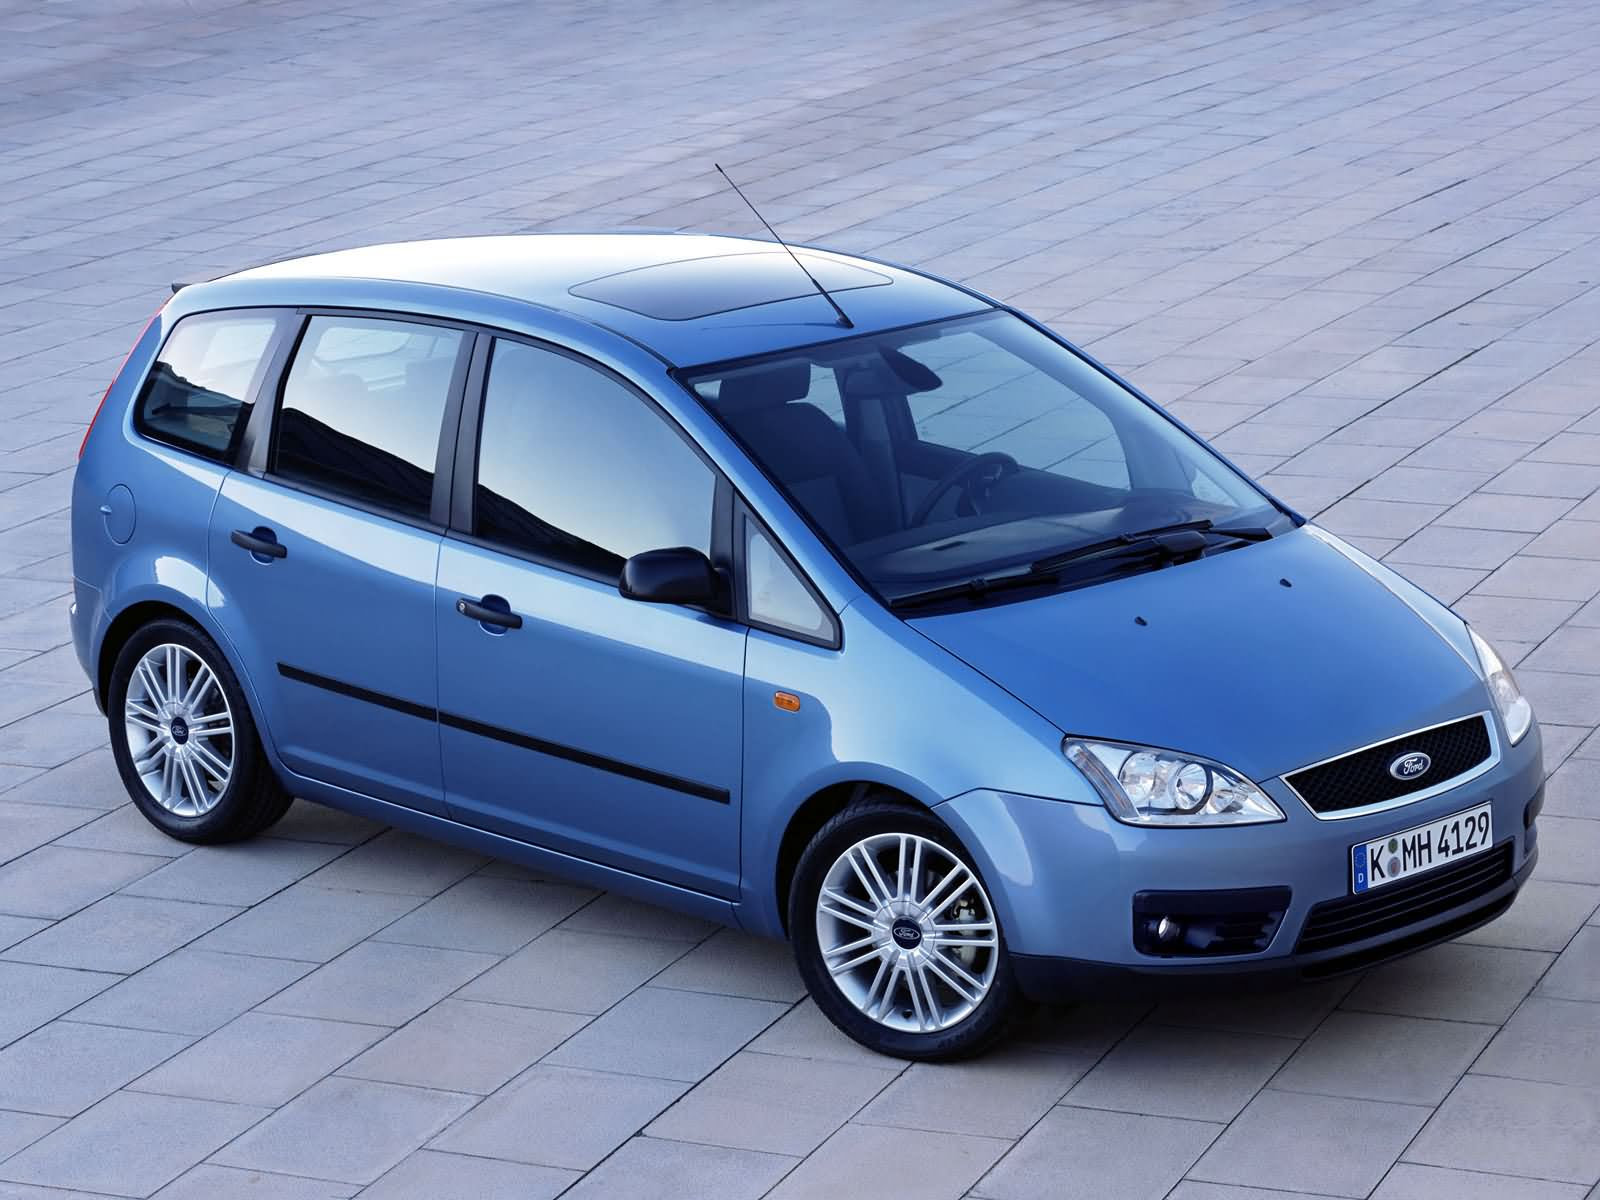 Ford Focus C-Max photo 3305